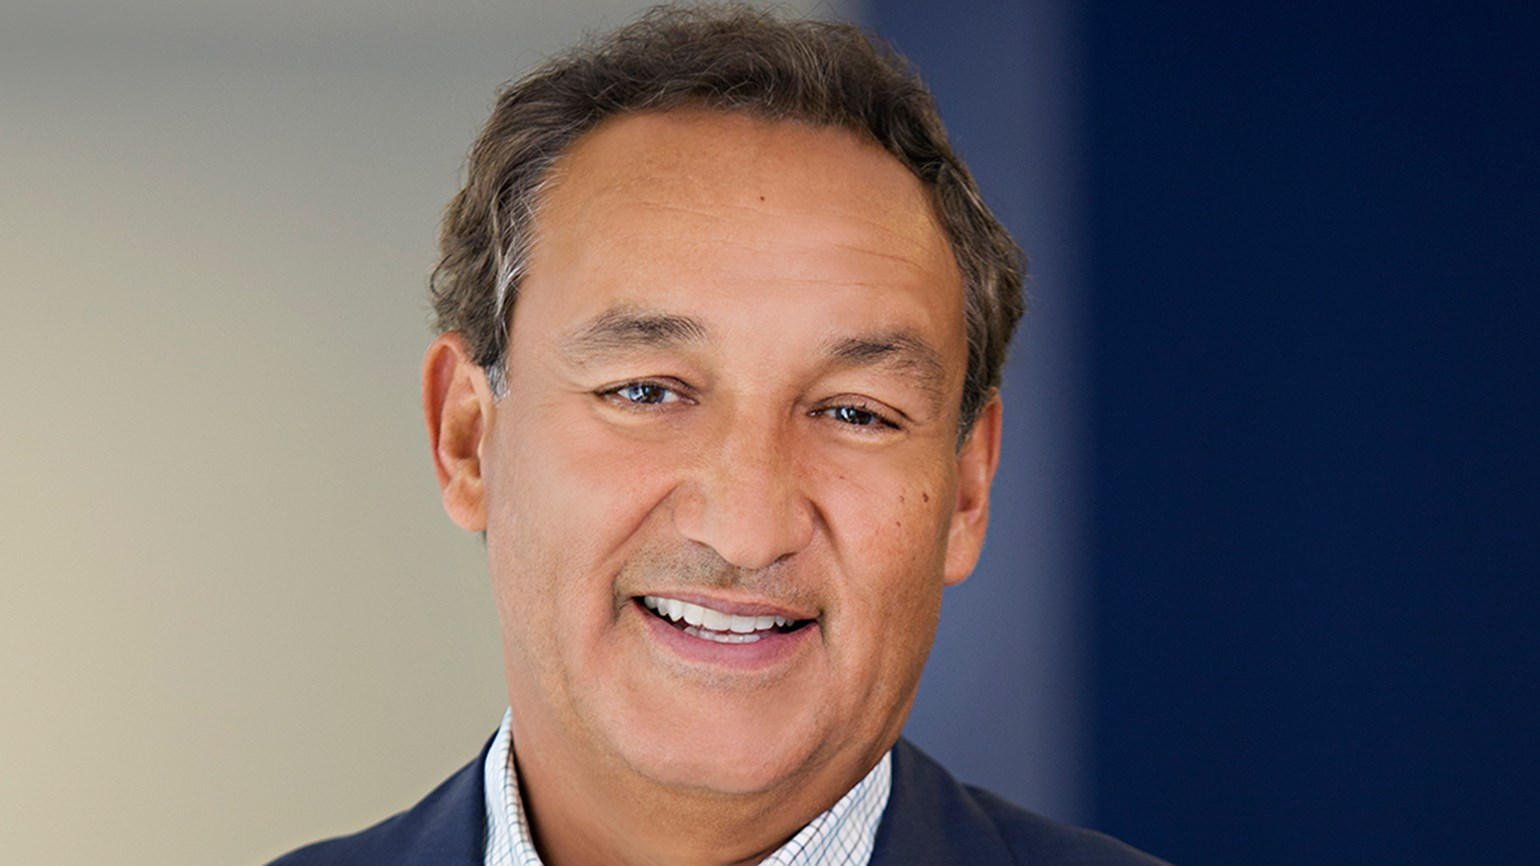 United Airlines CEO declines bonus